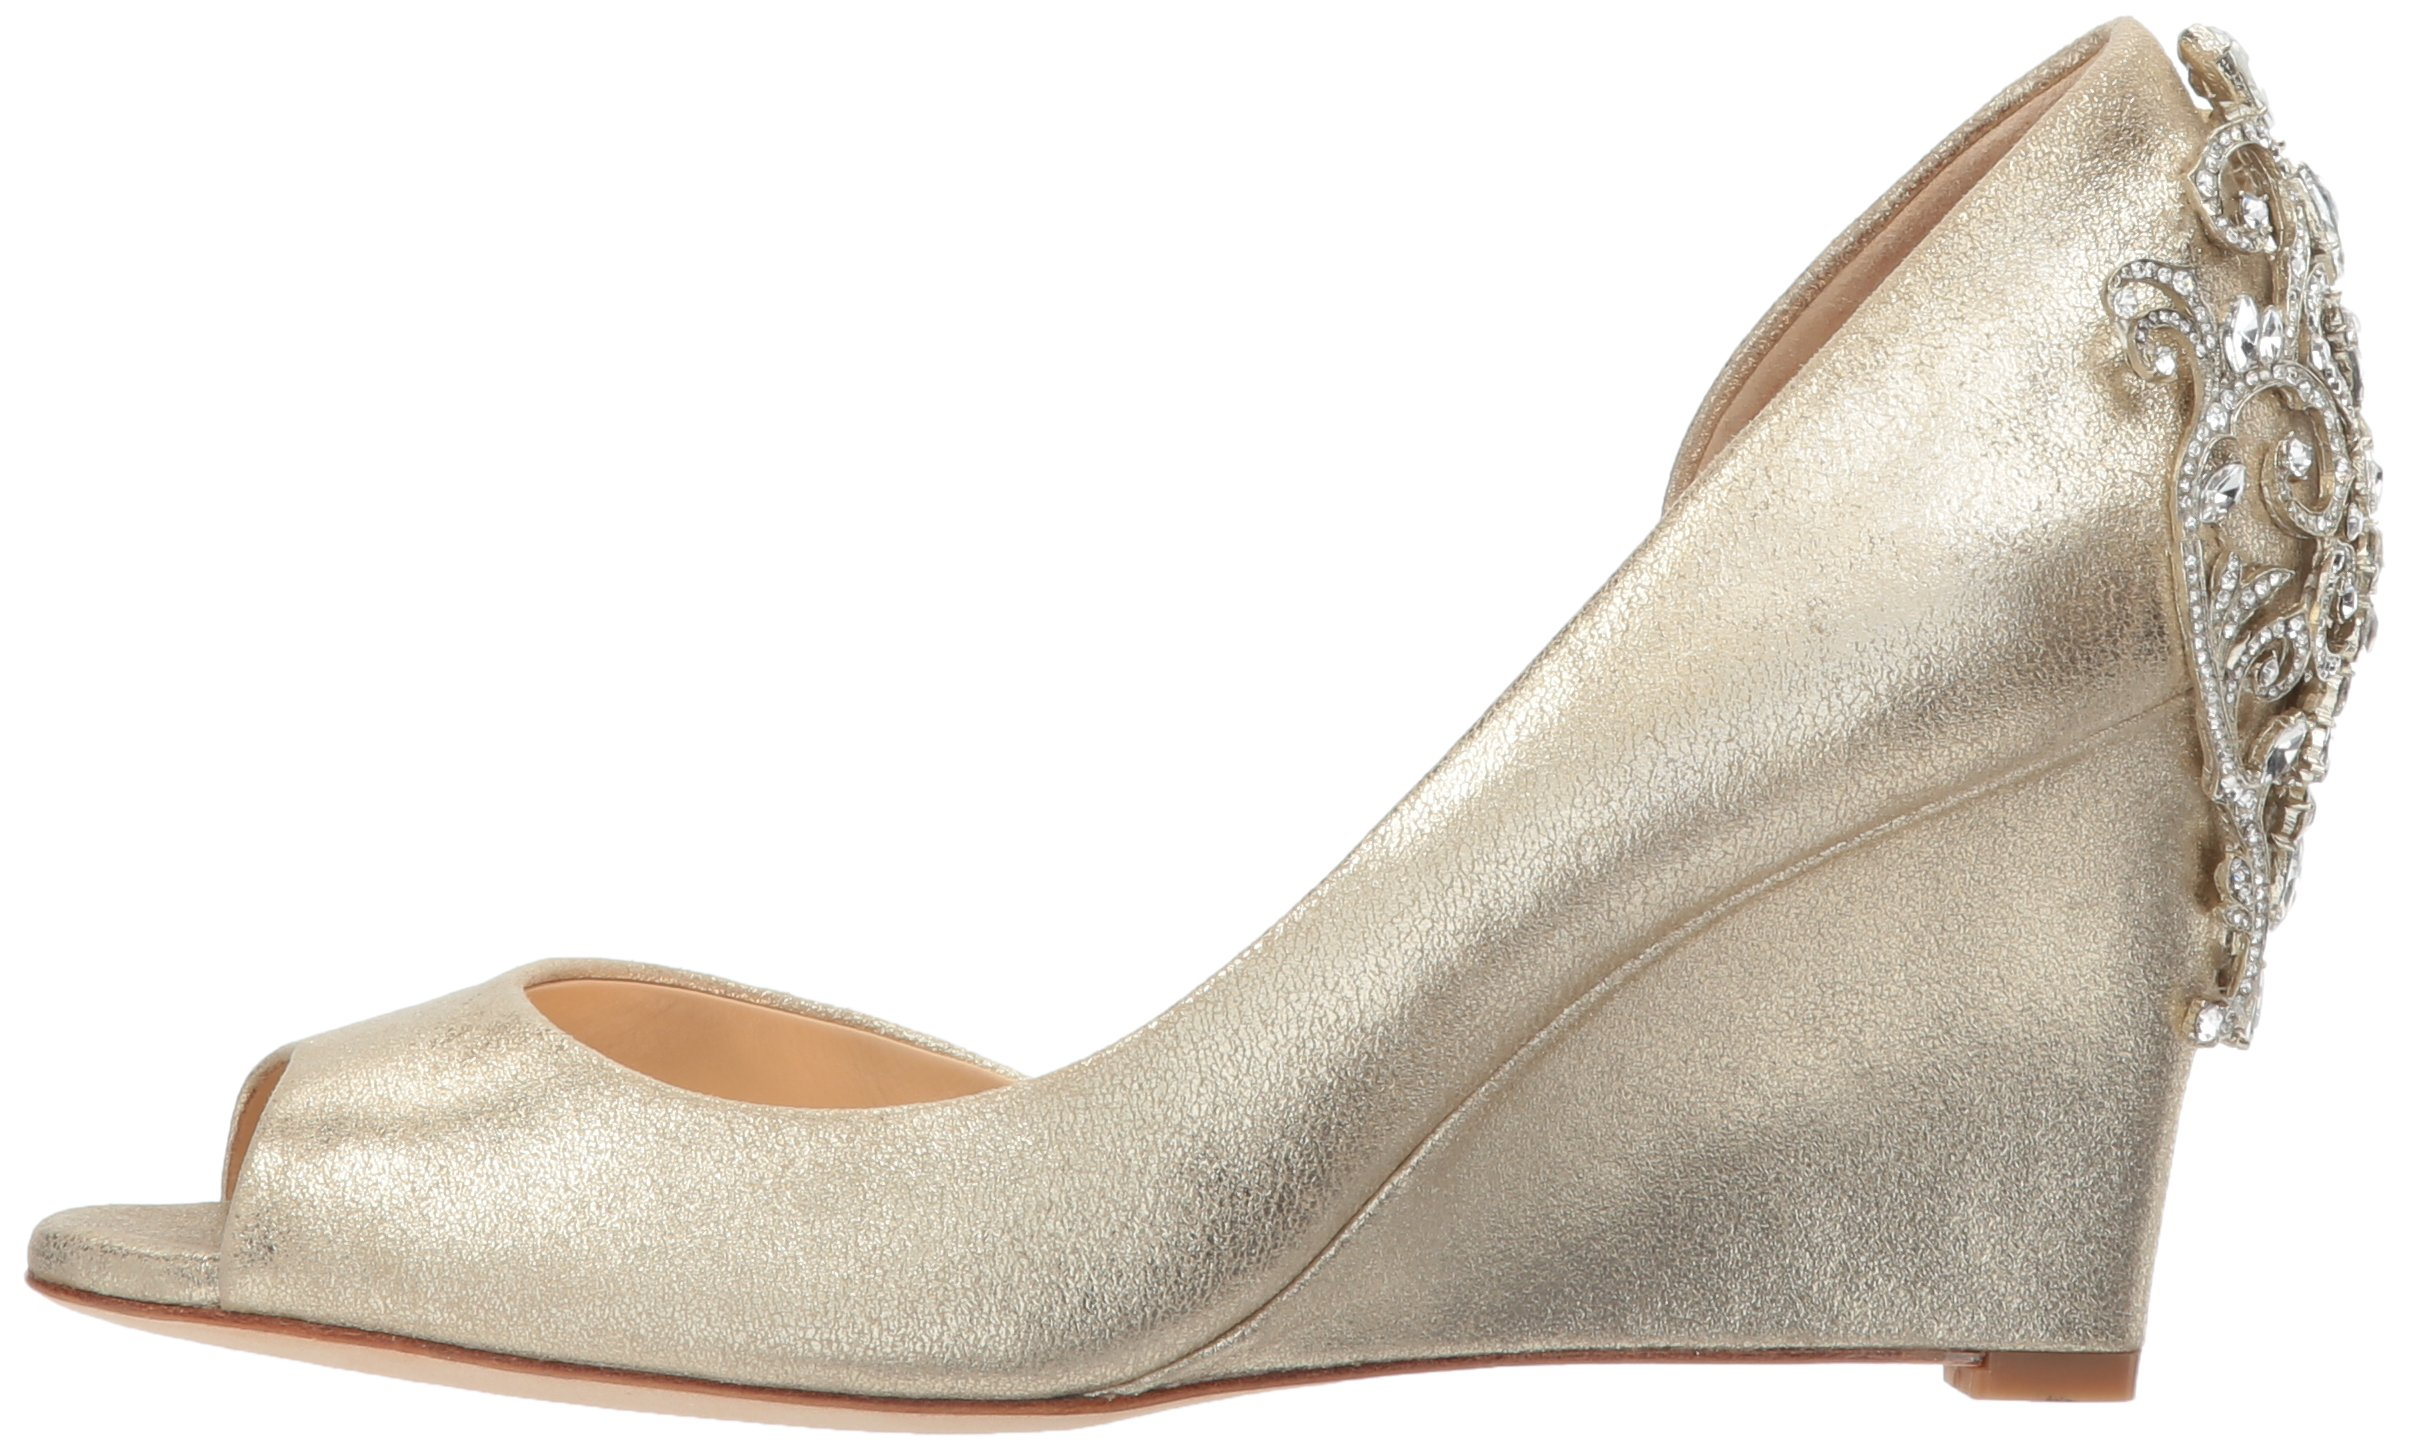 Badgley Mischka Women's Meagan II Pump, platino_929, 7 M US by Badgley Mischka (Image #5)